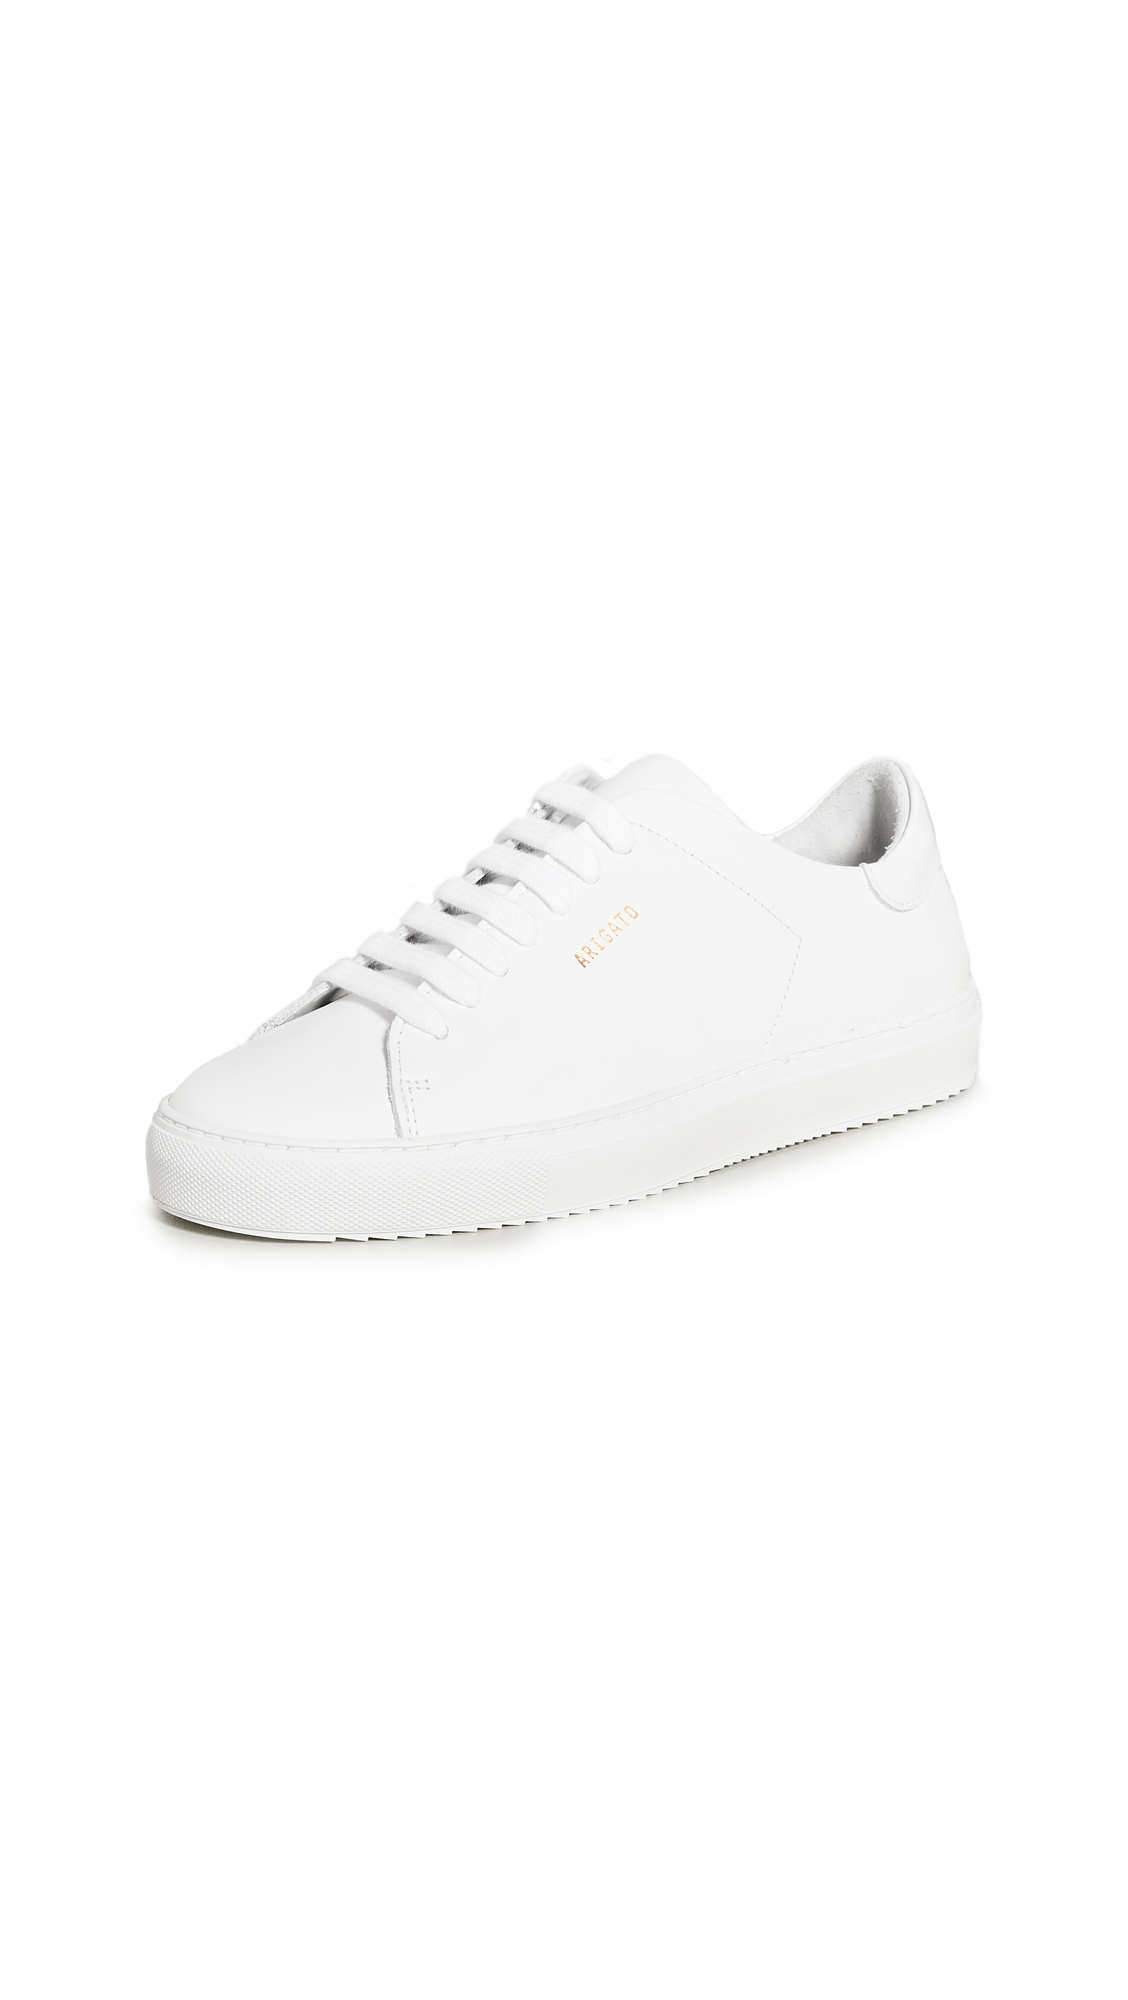 Buy Axel Arigato online - photo of Axel Arigato Clean 90 Sneakers